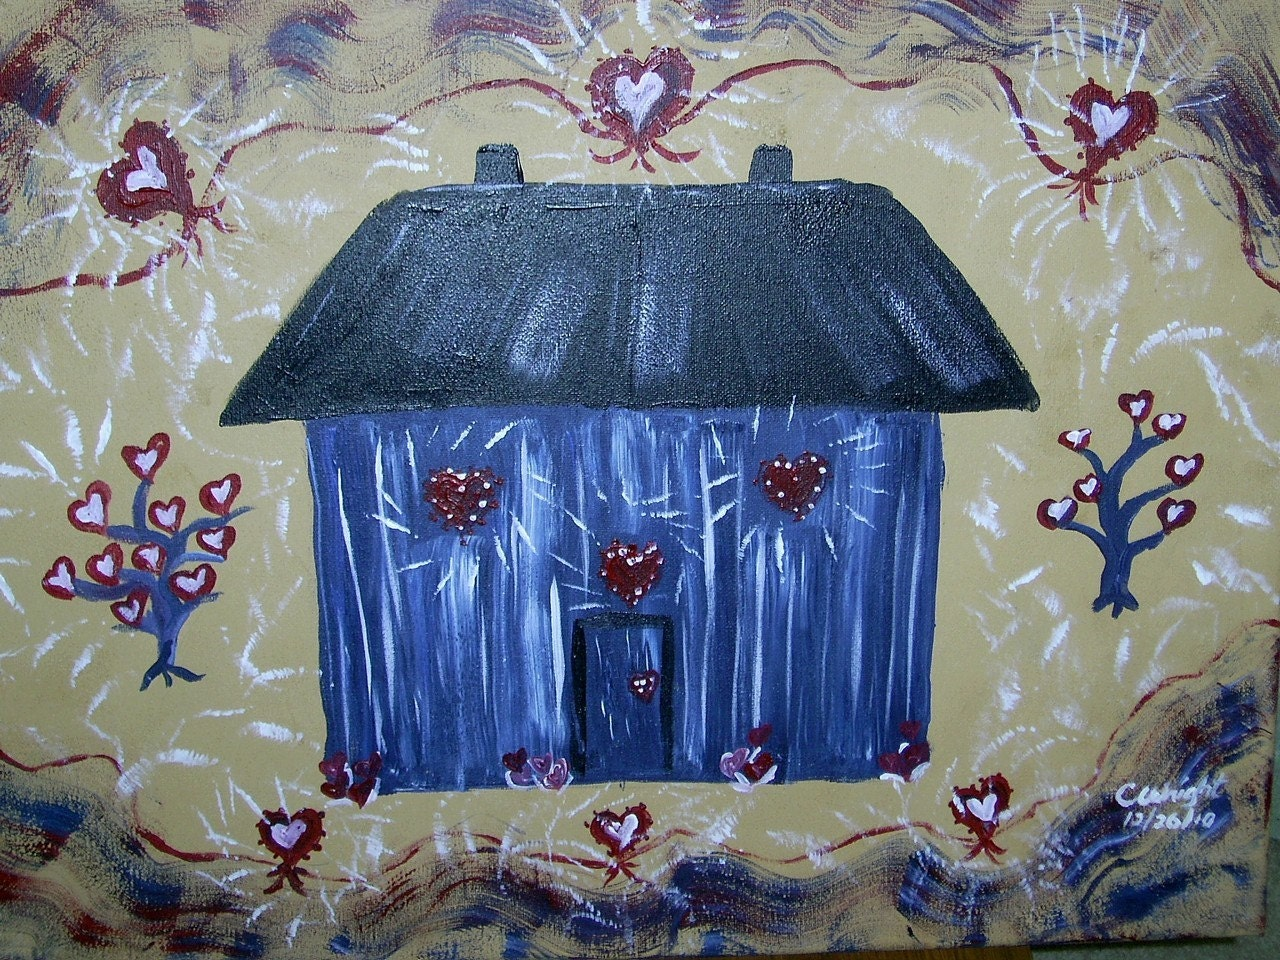 Only Hearts Build a Home 18x24 inch acrylic painting on stretched canvas FREE USA SHIPPING